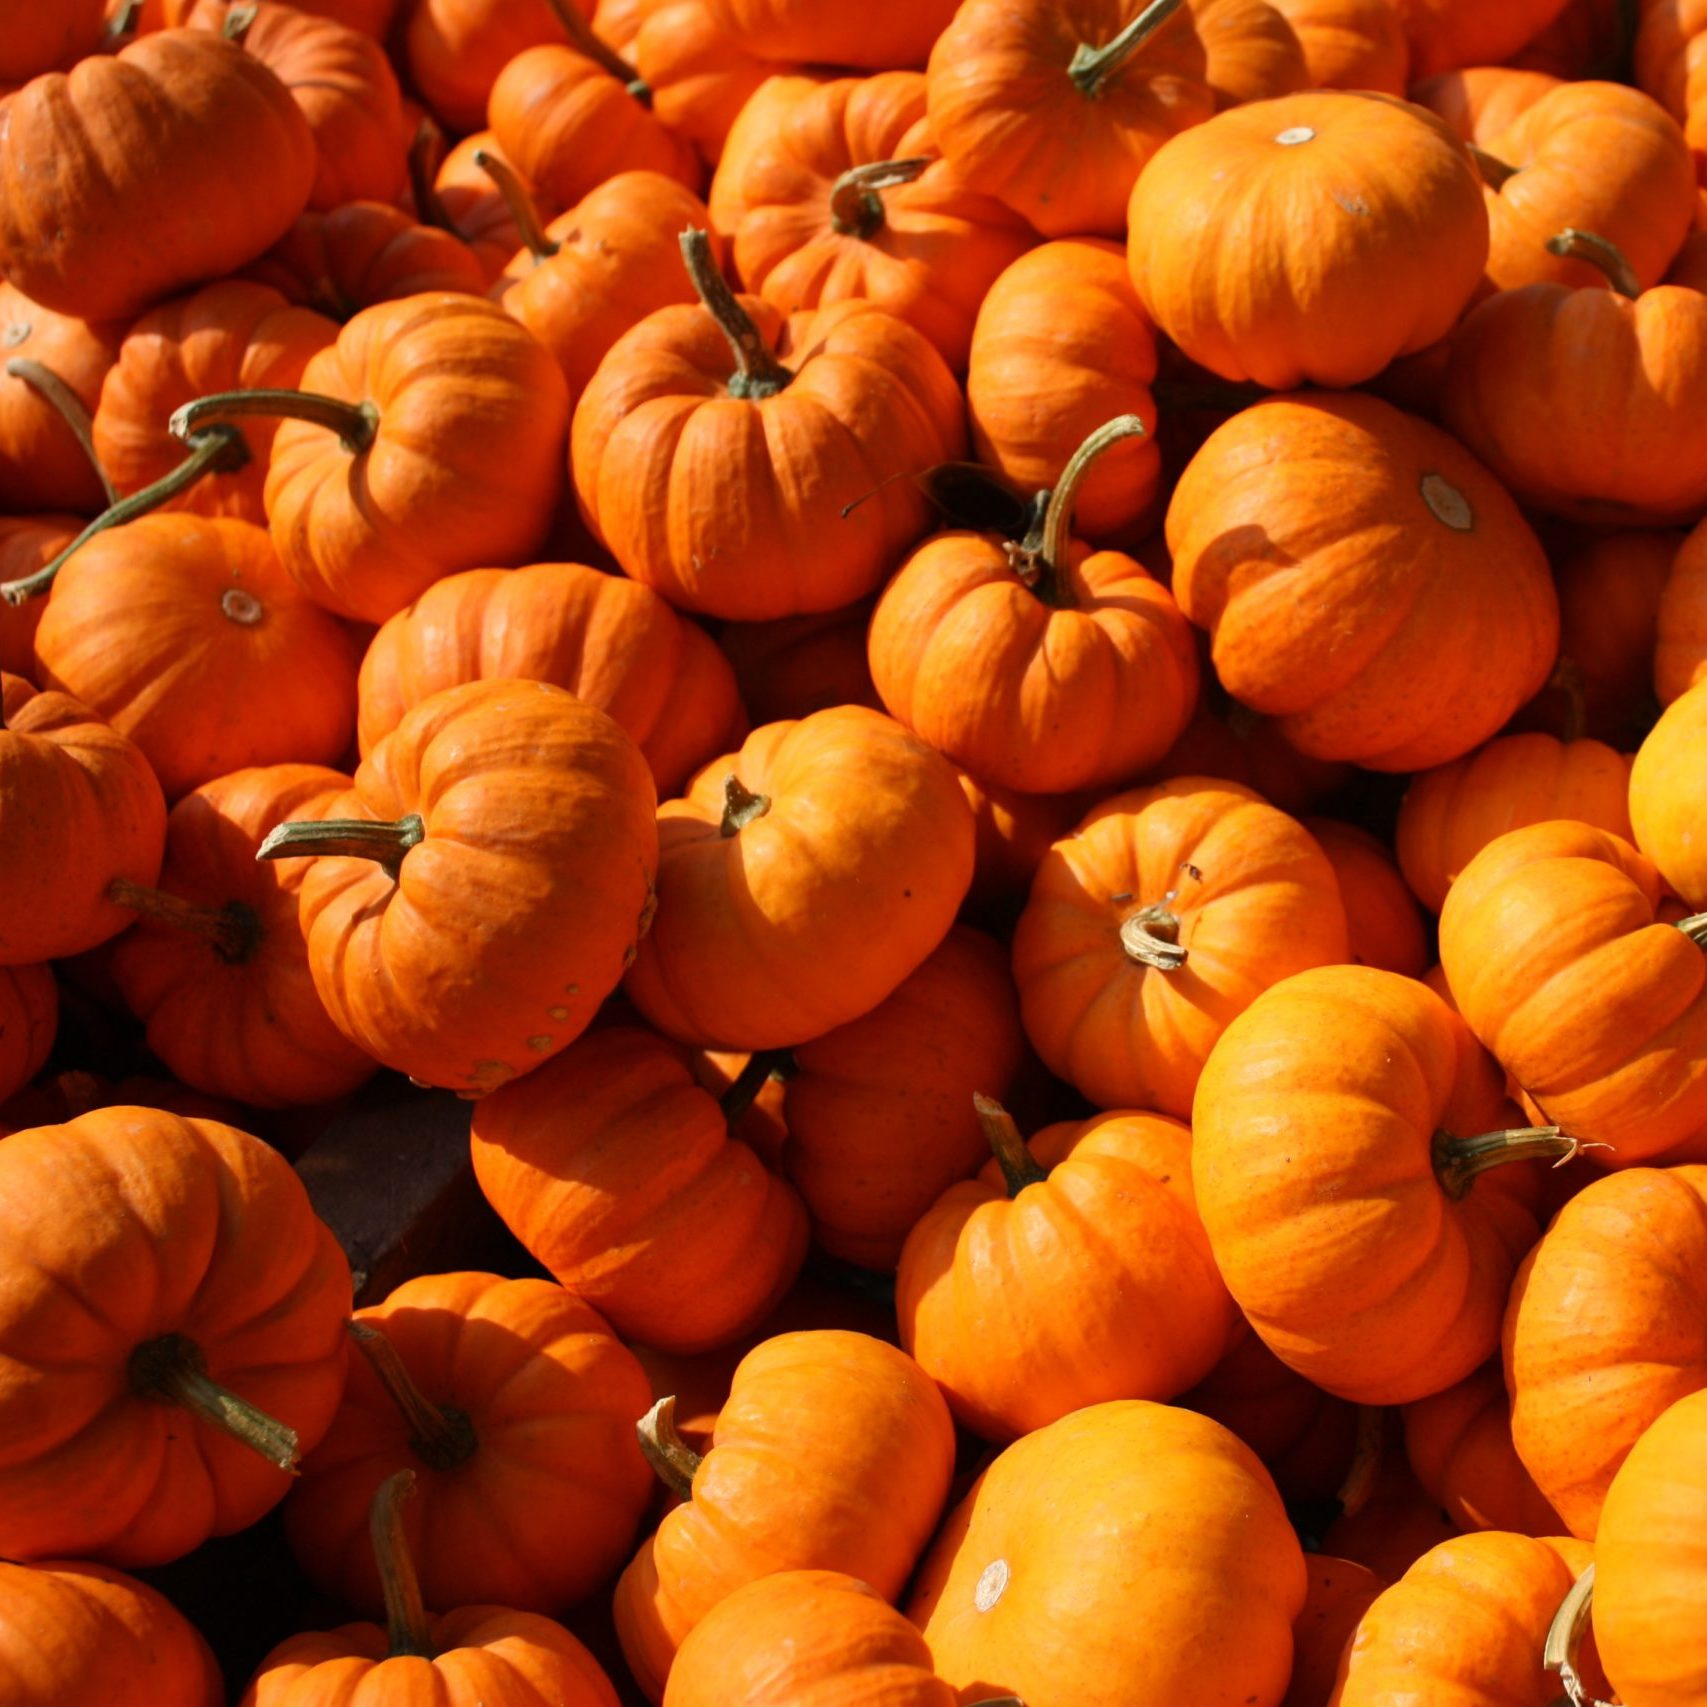 a jumbled group of bright orange pumpkins in the sunlight